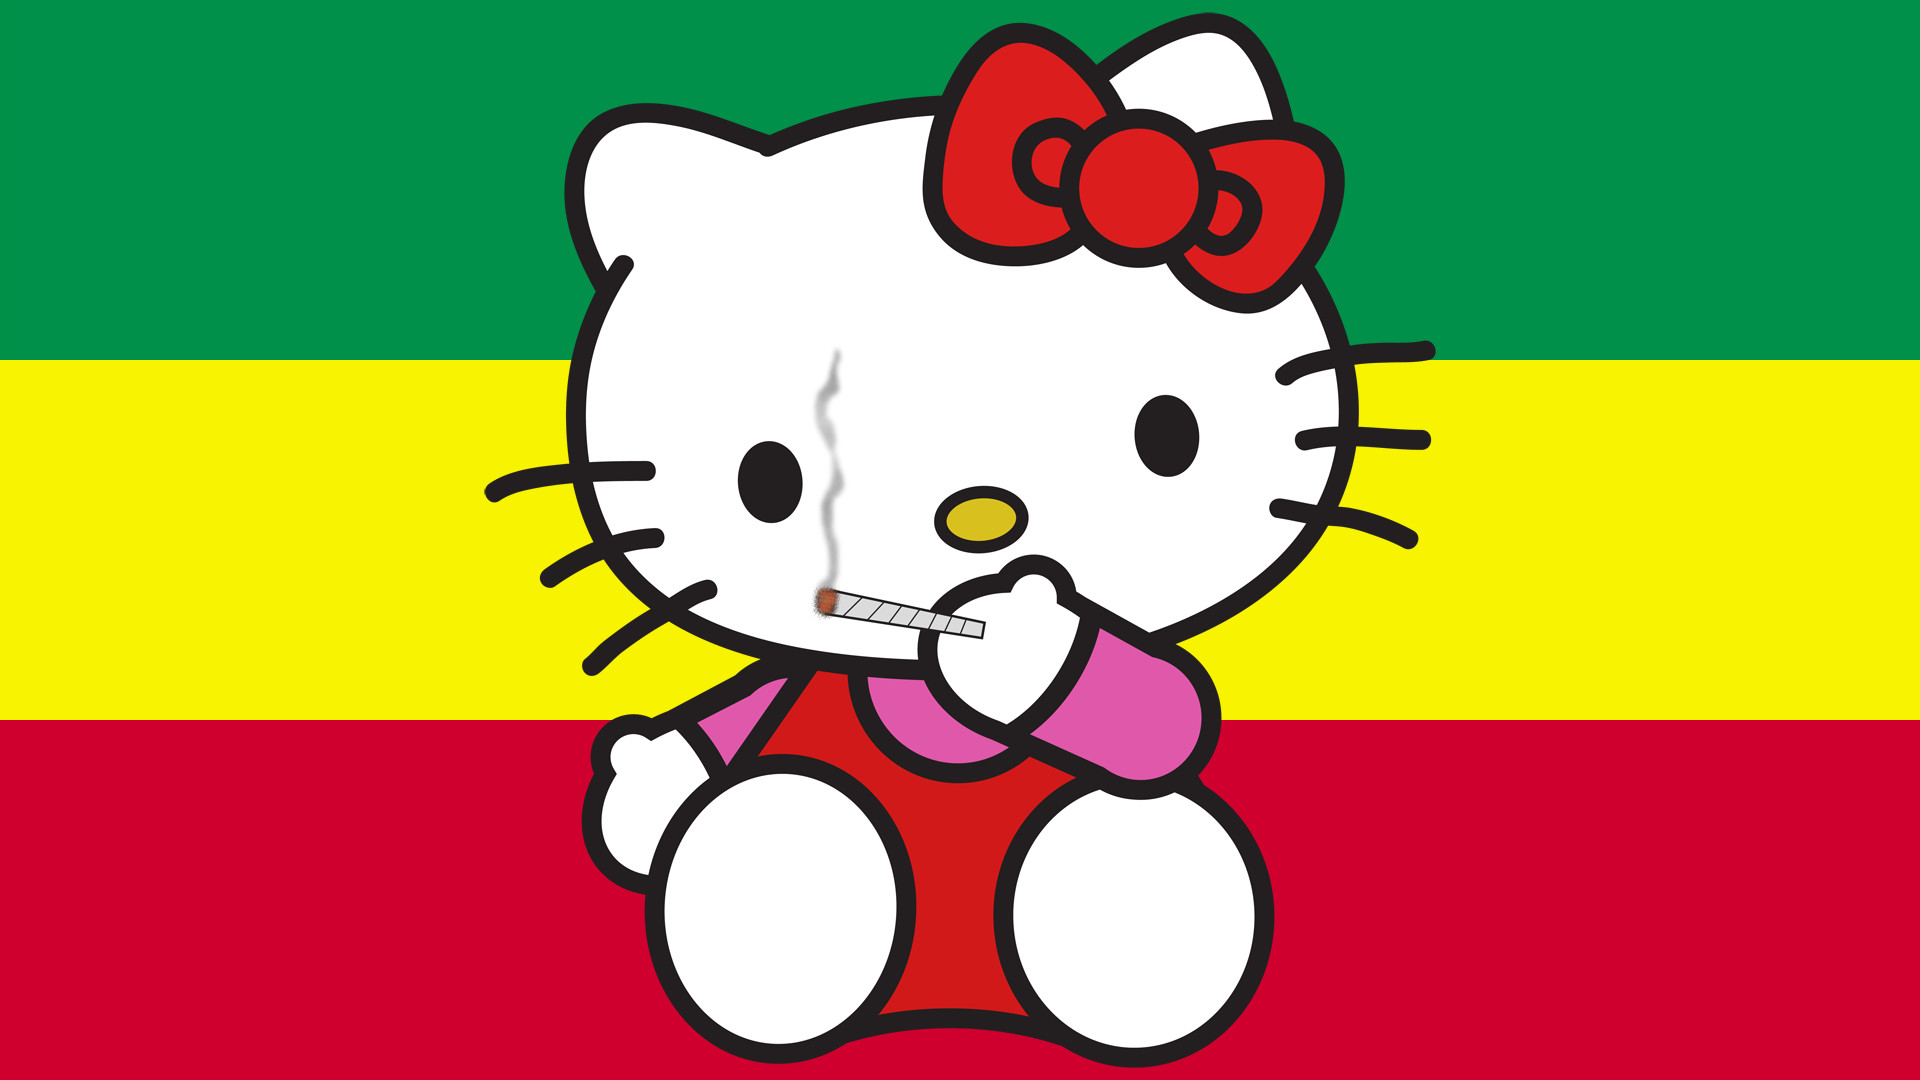 Weed Iphone 5 Wallpaper Hello Kitty Pictures Wallpaper 65 Images